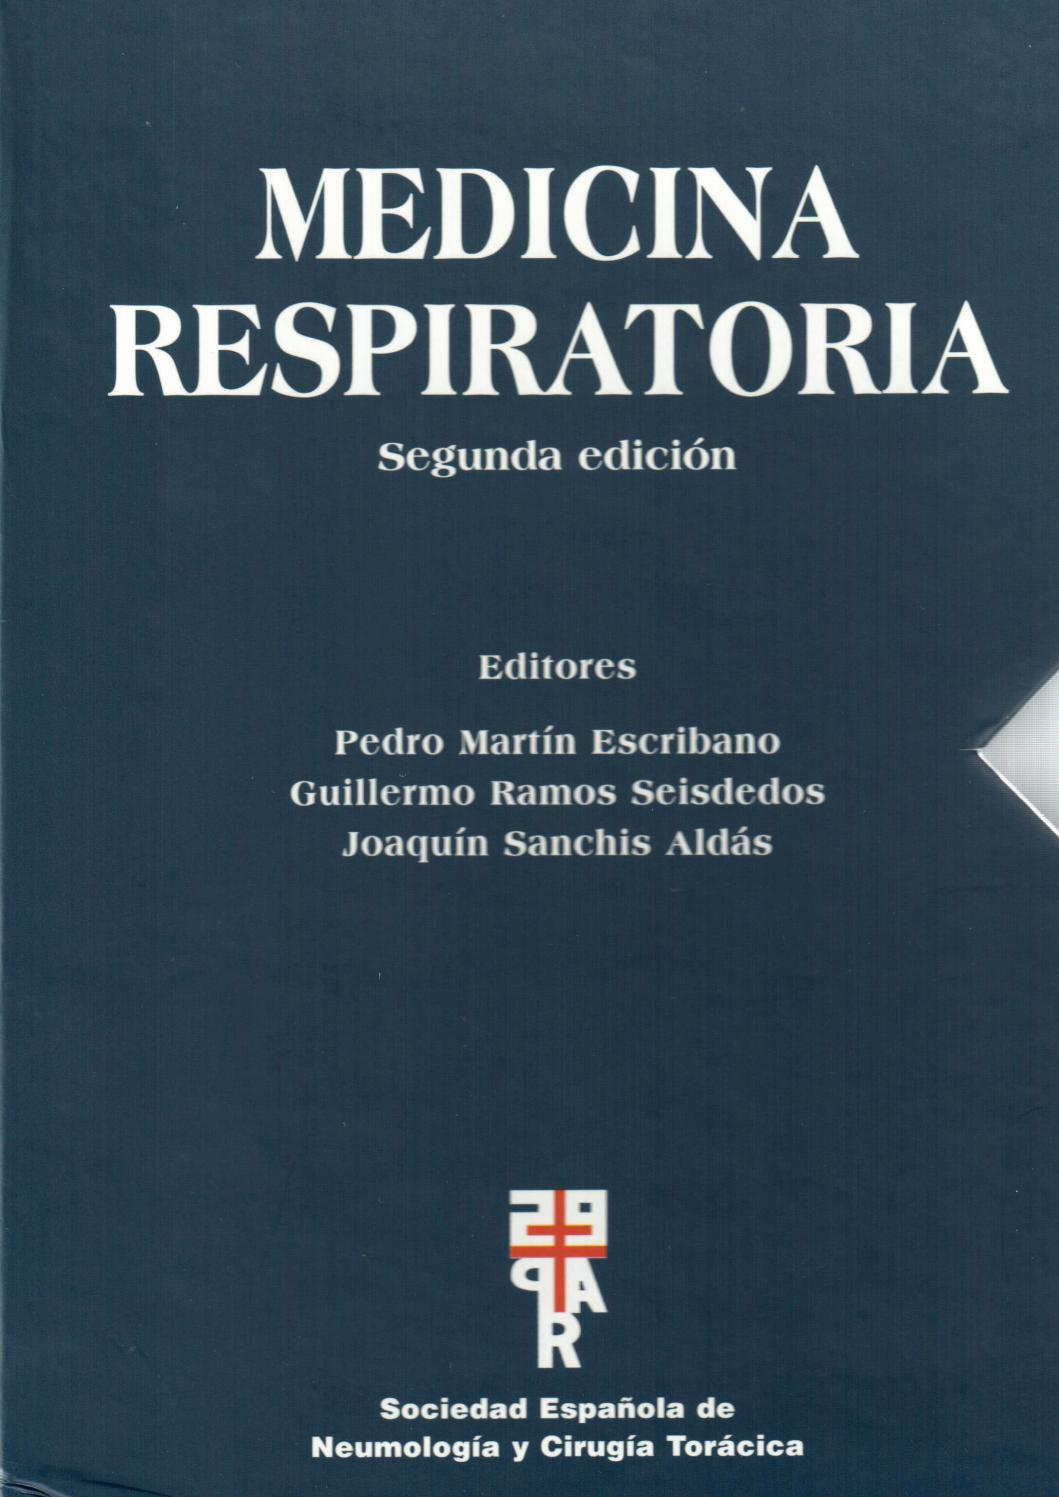 694756aff1ec Manual de medicina respiratoria. Parte 2 by SEPAR - issuu